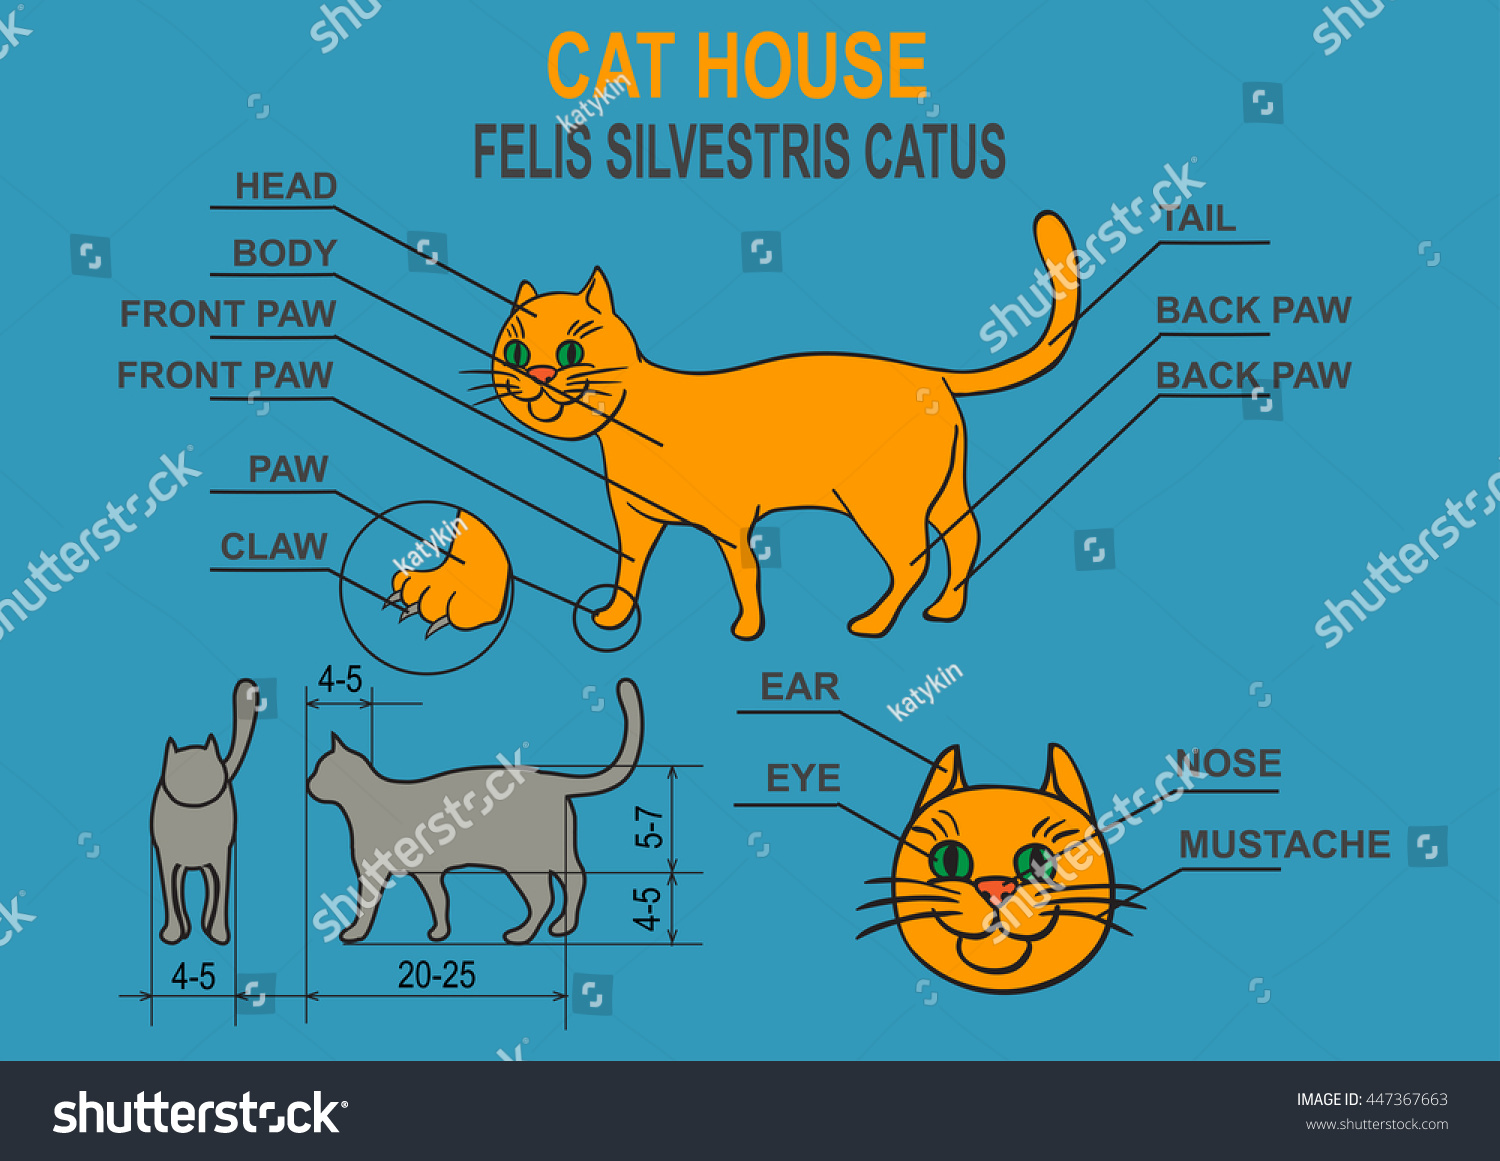 Cat Home Schematic Representation Domestic Stock Illustration Claw Of A Description The Organism Infographic